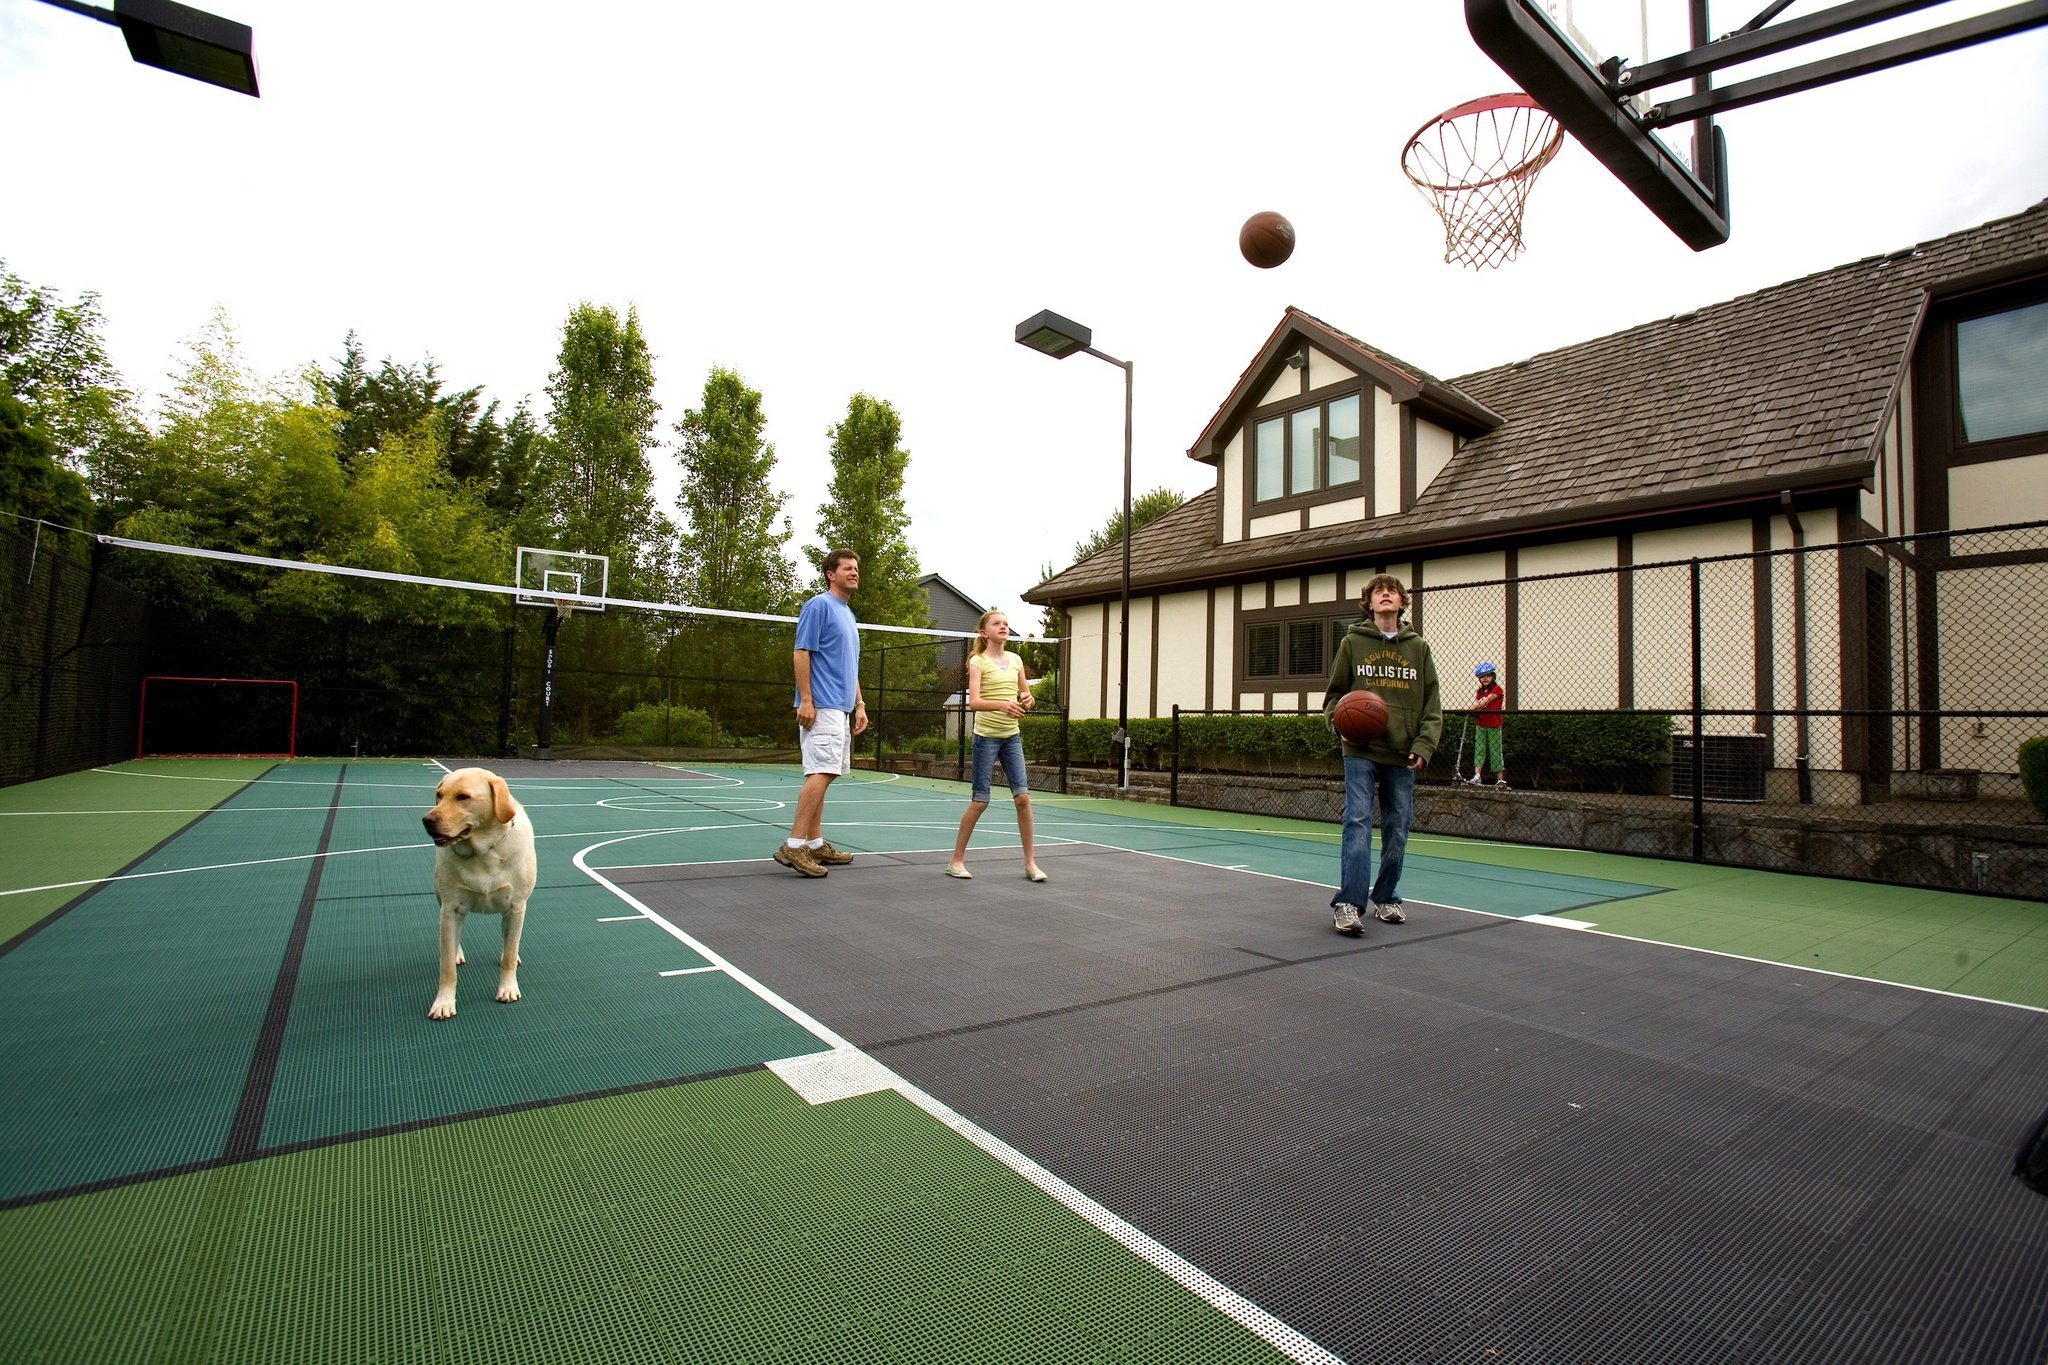 Years of neighbor conflict over children playing basketball leads West Linn City Council to